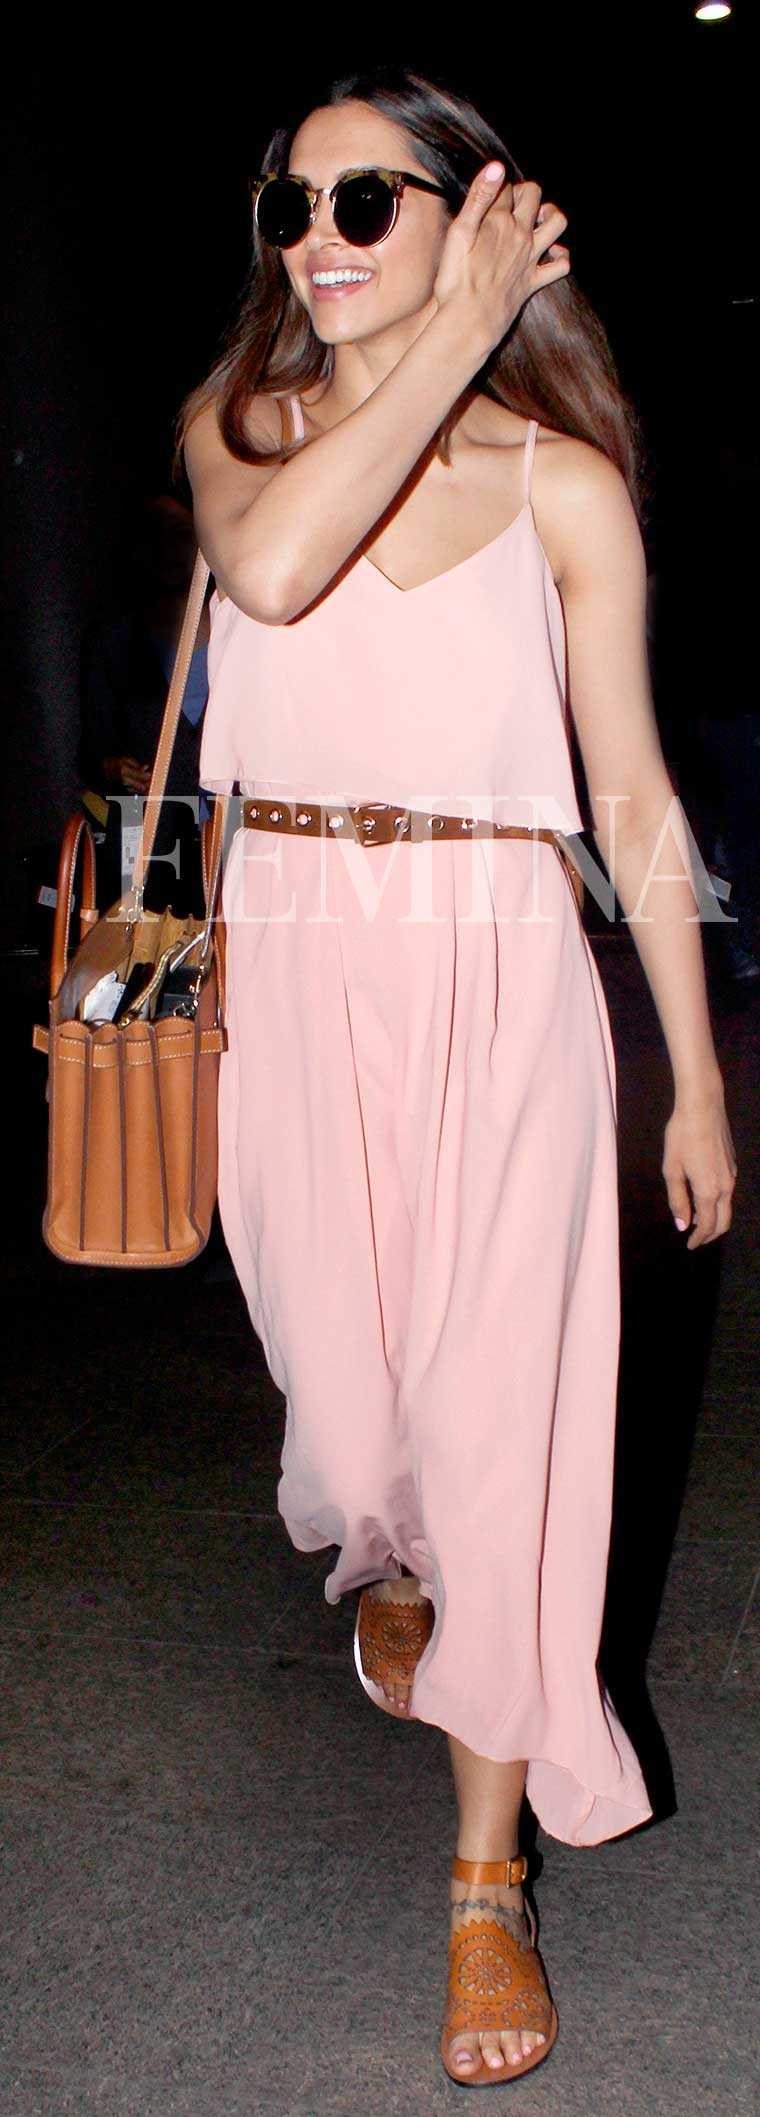 Deepika Padukone peach All About You dress